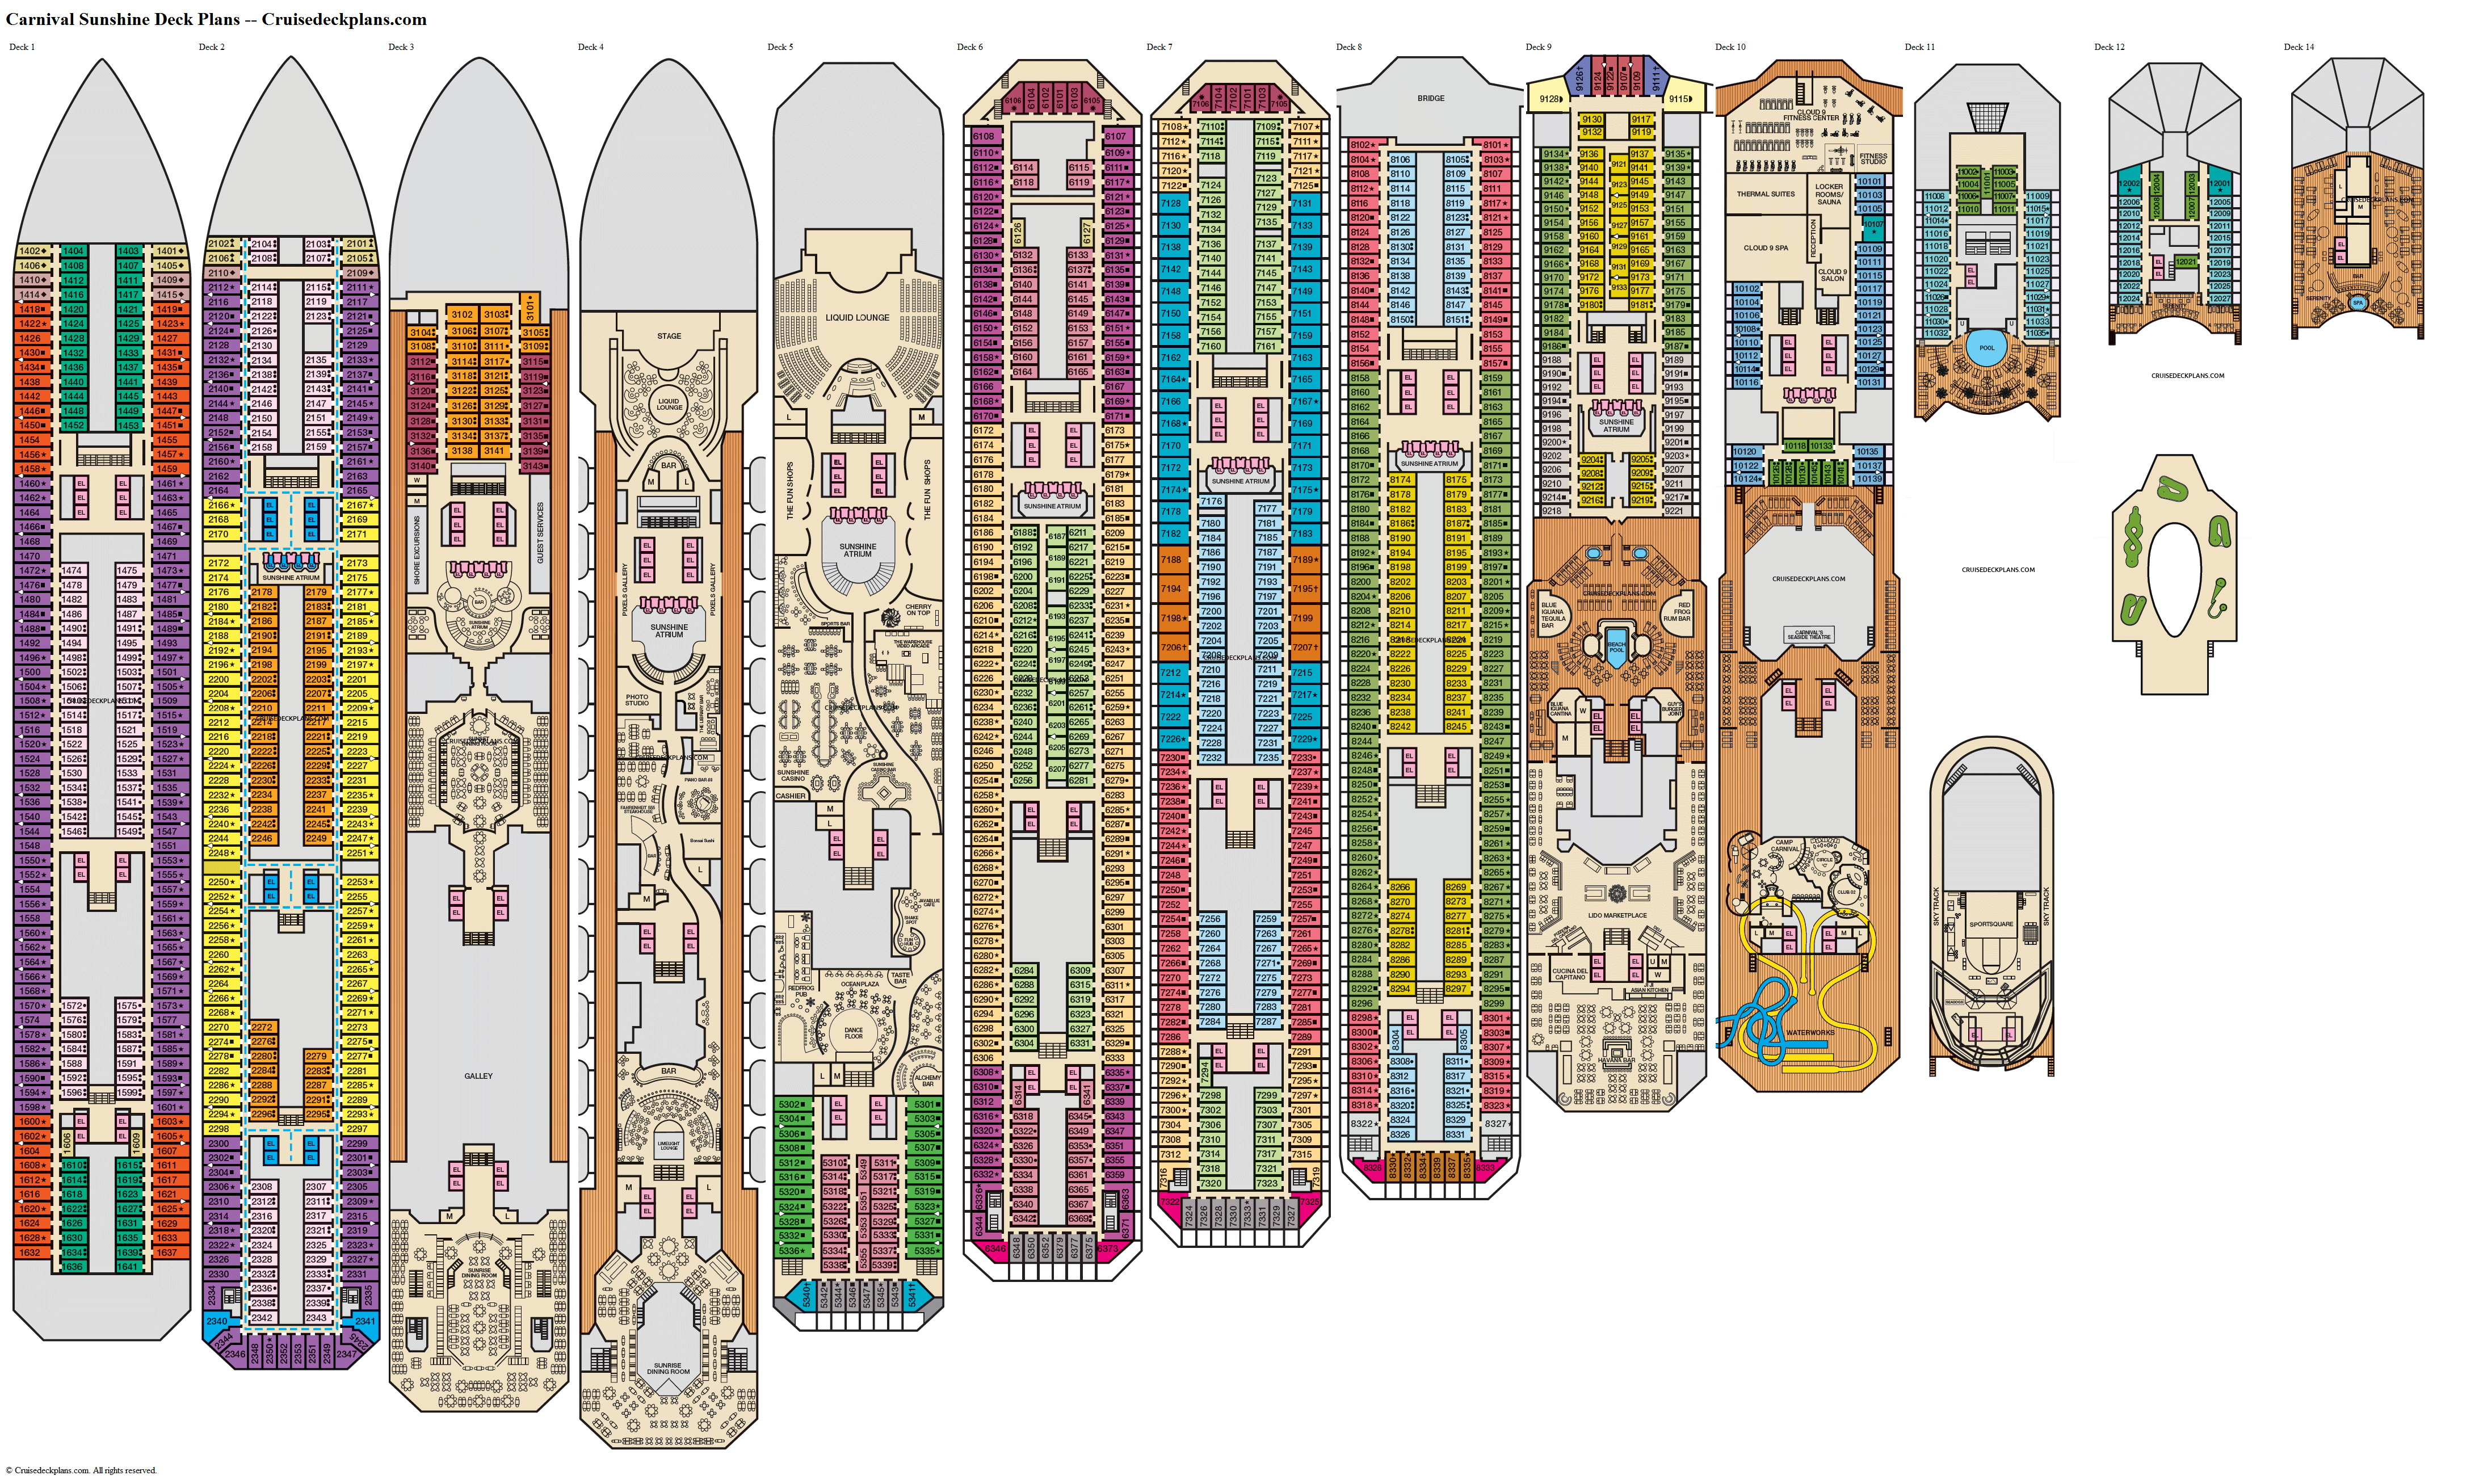 Carnival Sunshine deck plans image